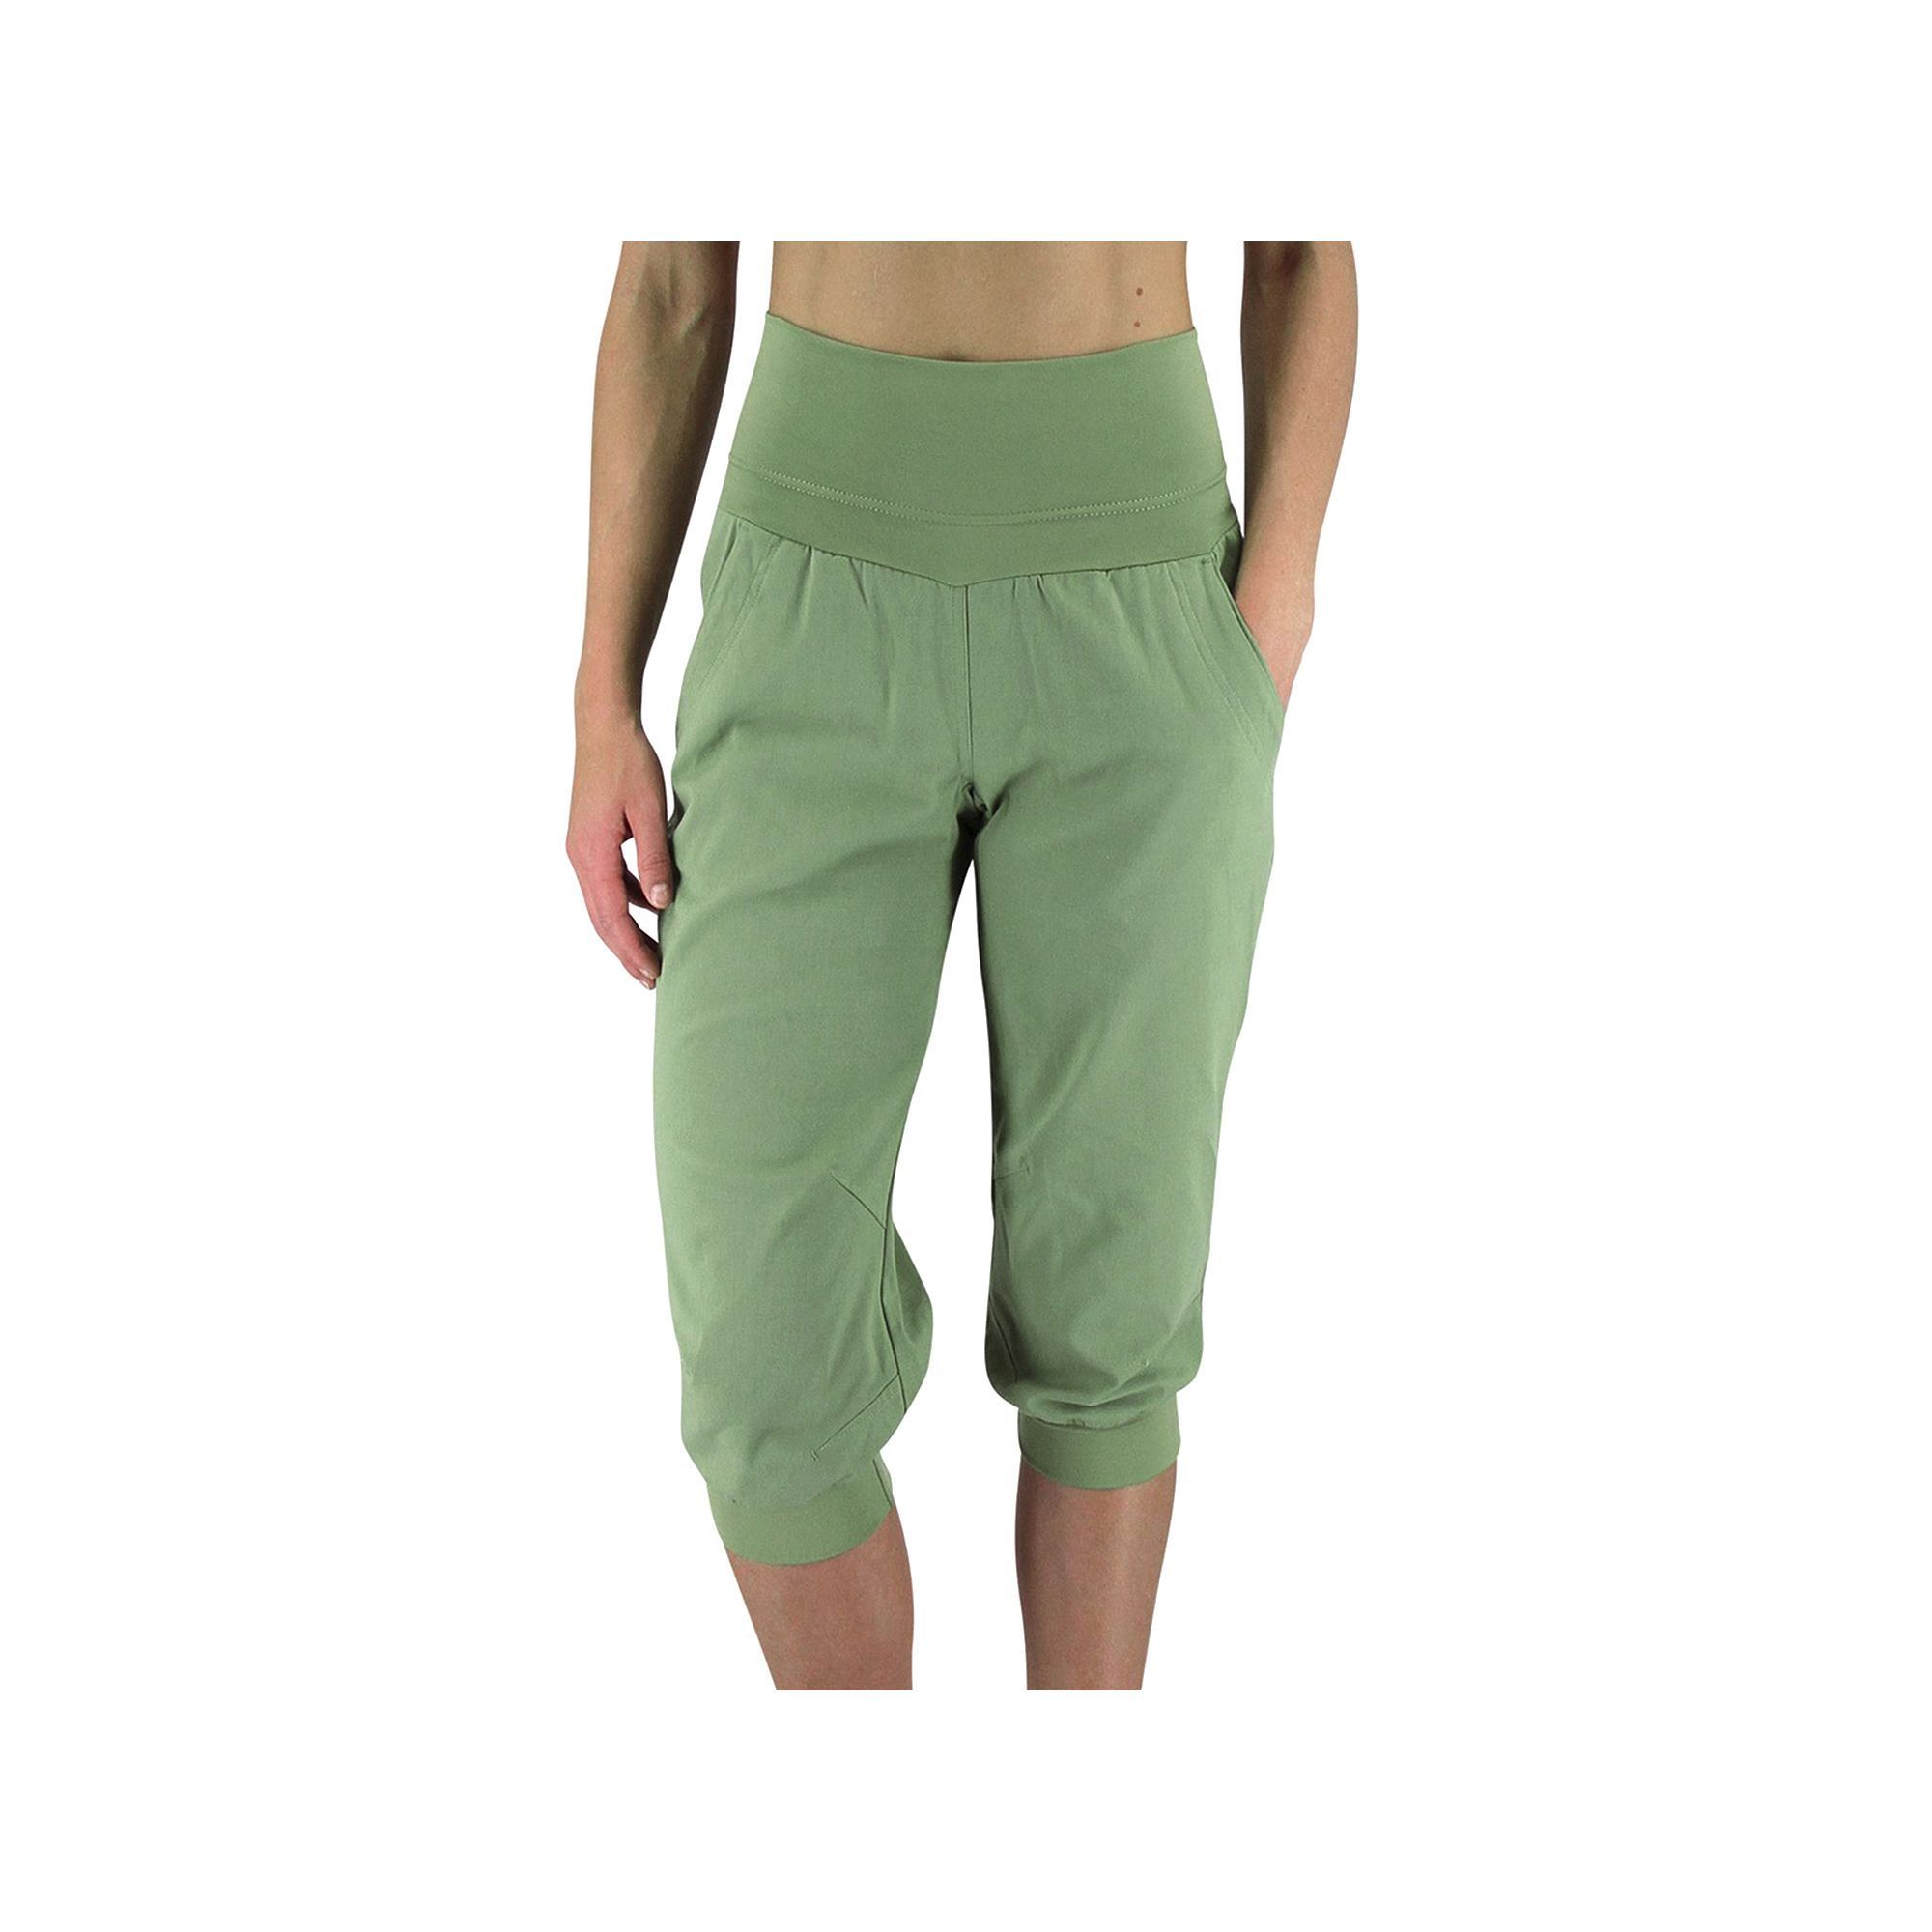 8dd64e3af9d Women's Adidas Outdoor Energy Jogger Pants, Size: Small, Med Green ...